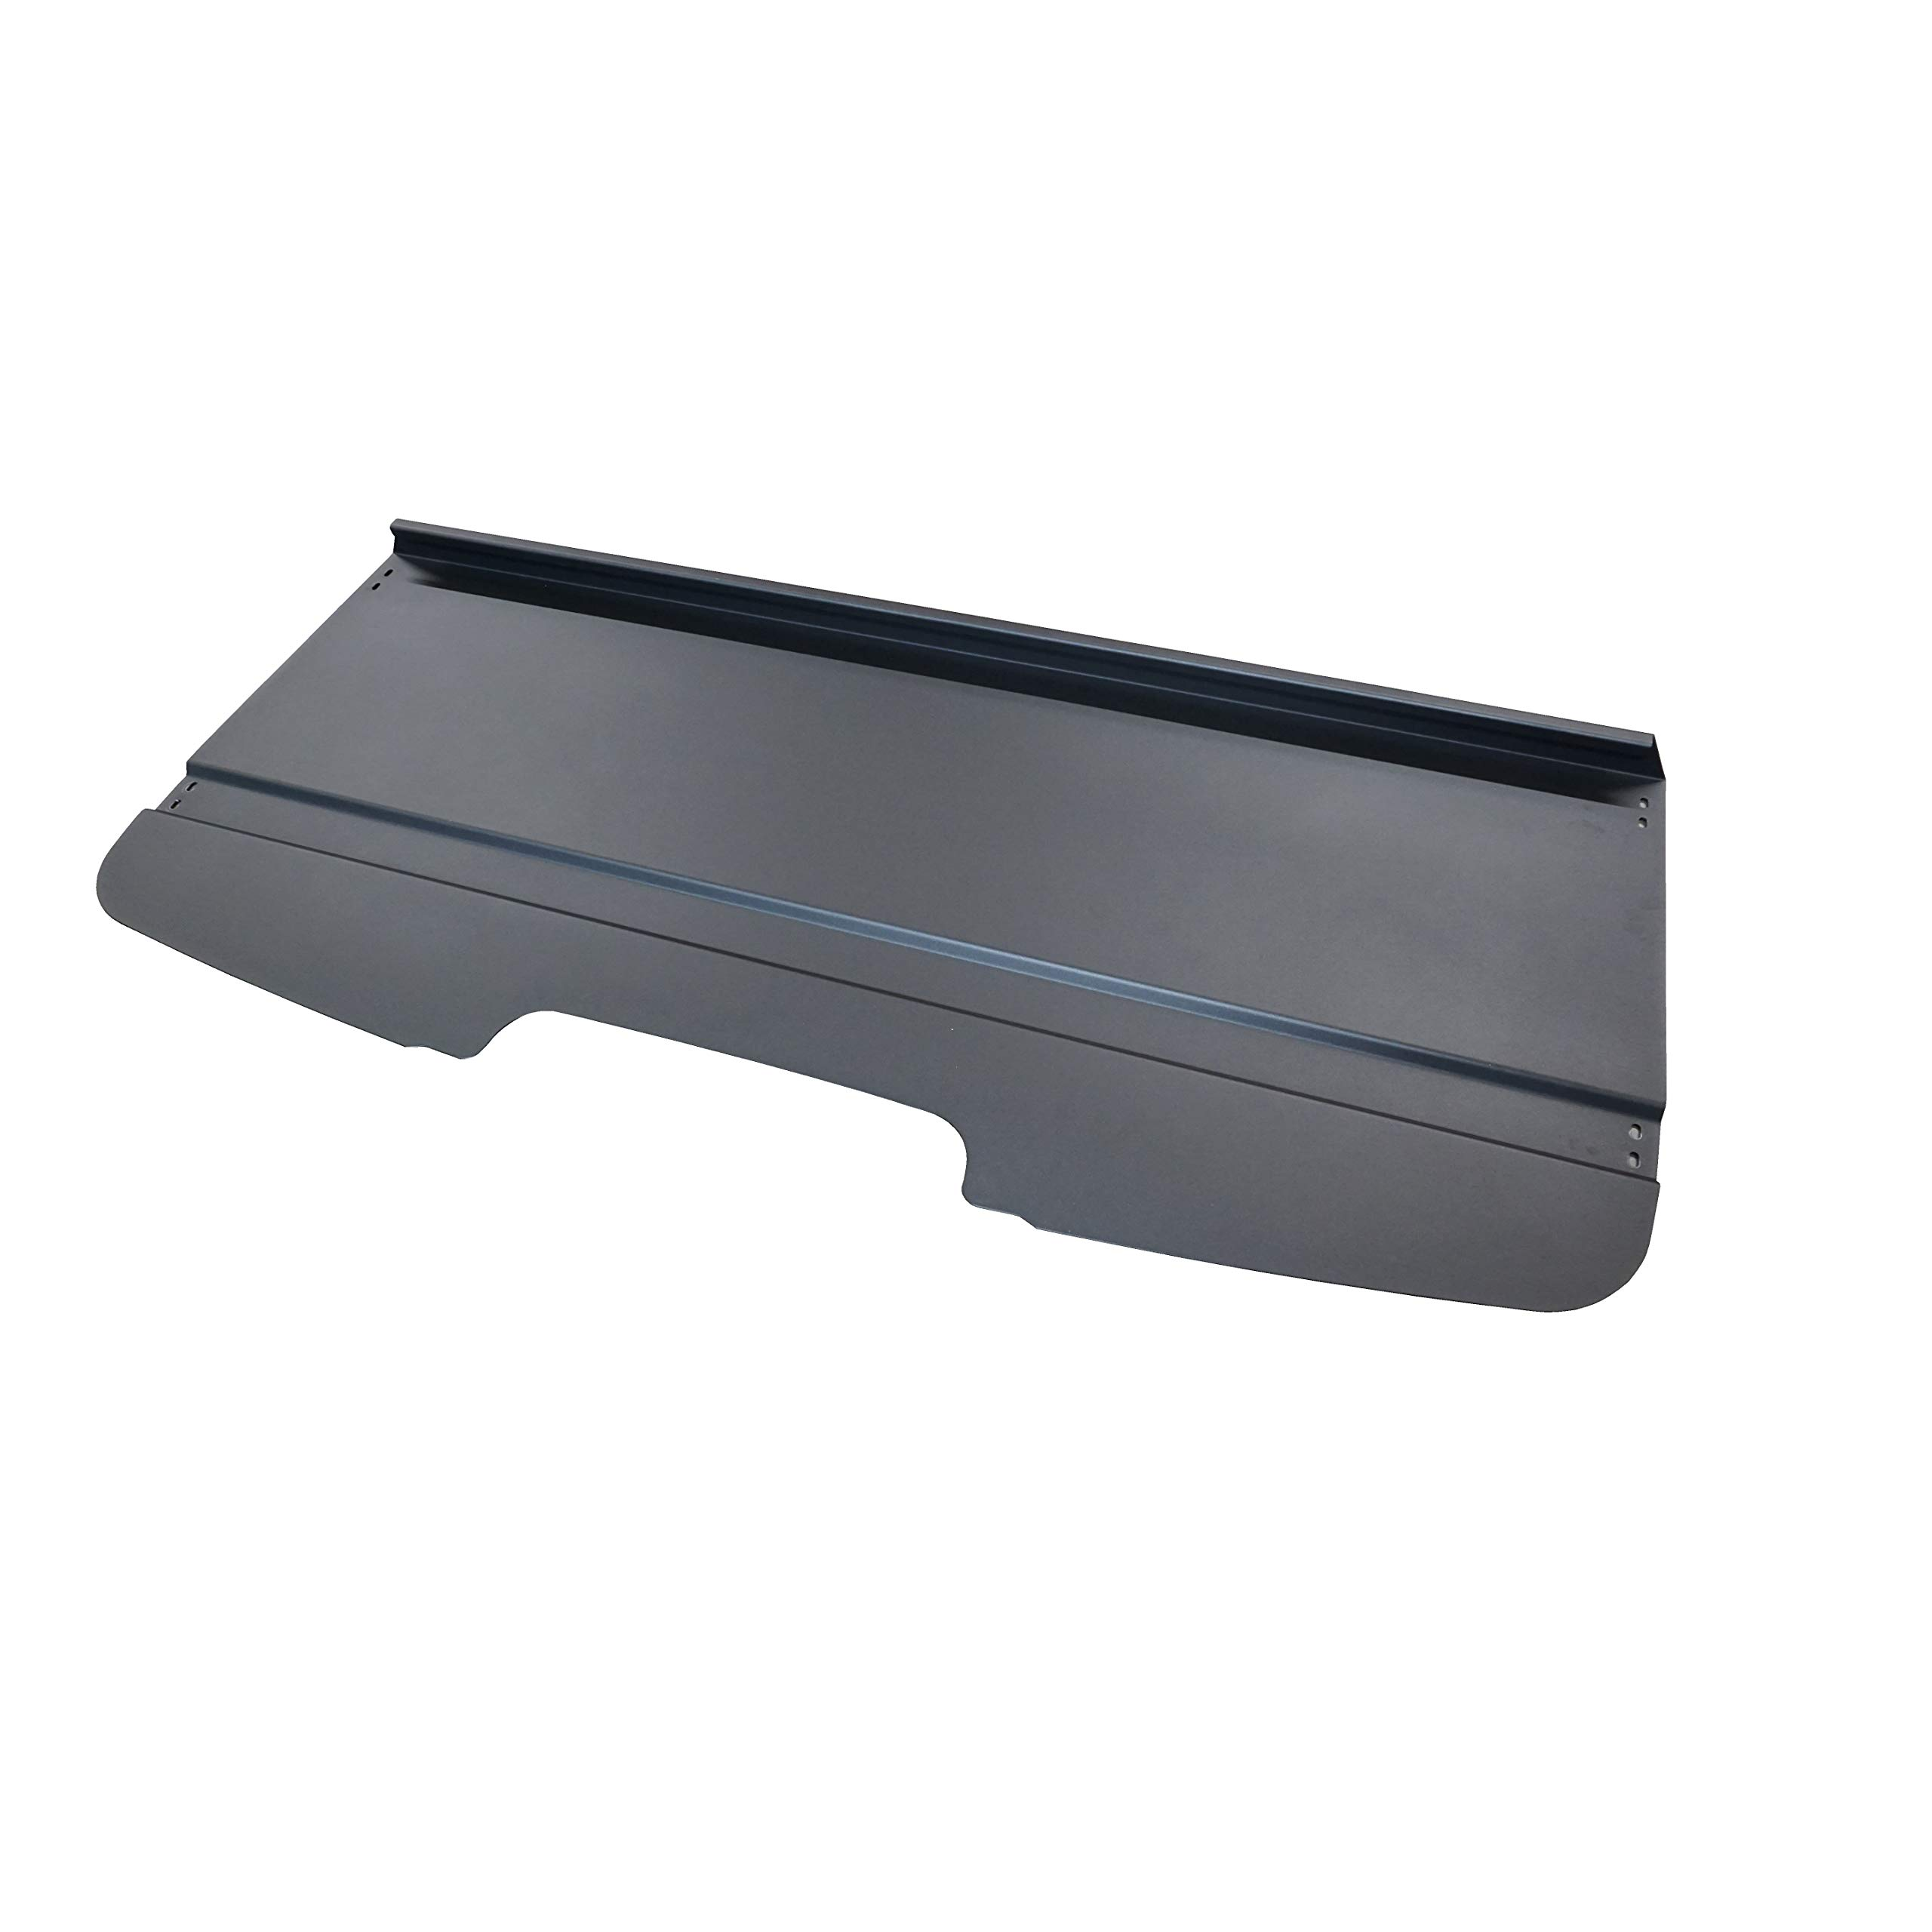 RB Components 2019+ High Roof Sprinter Van Raised Headliner Storage Shelf by RB Components